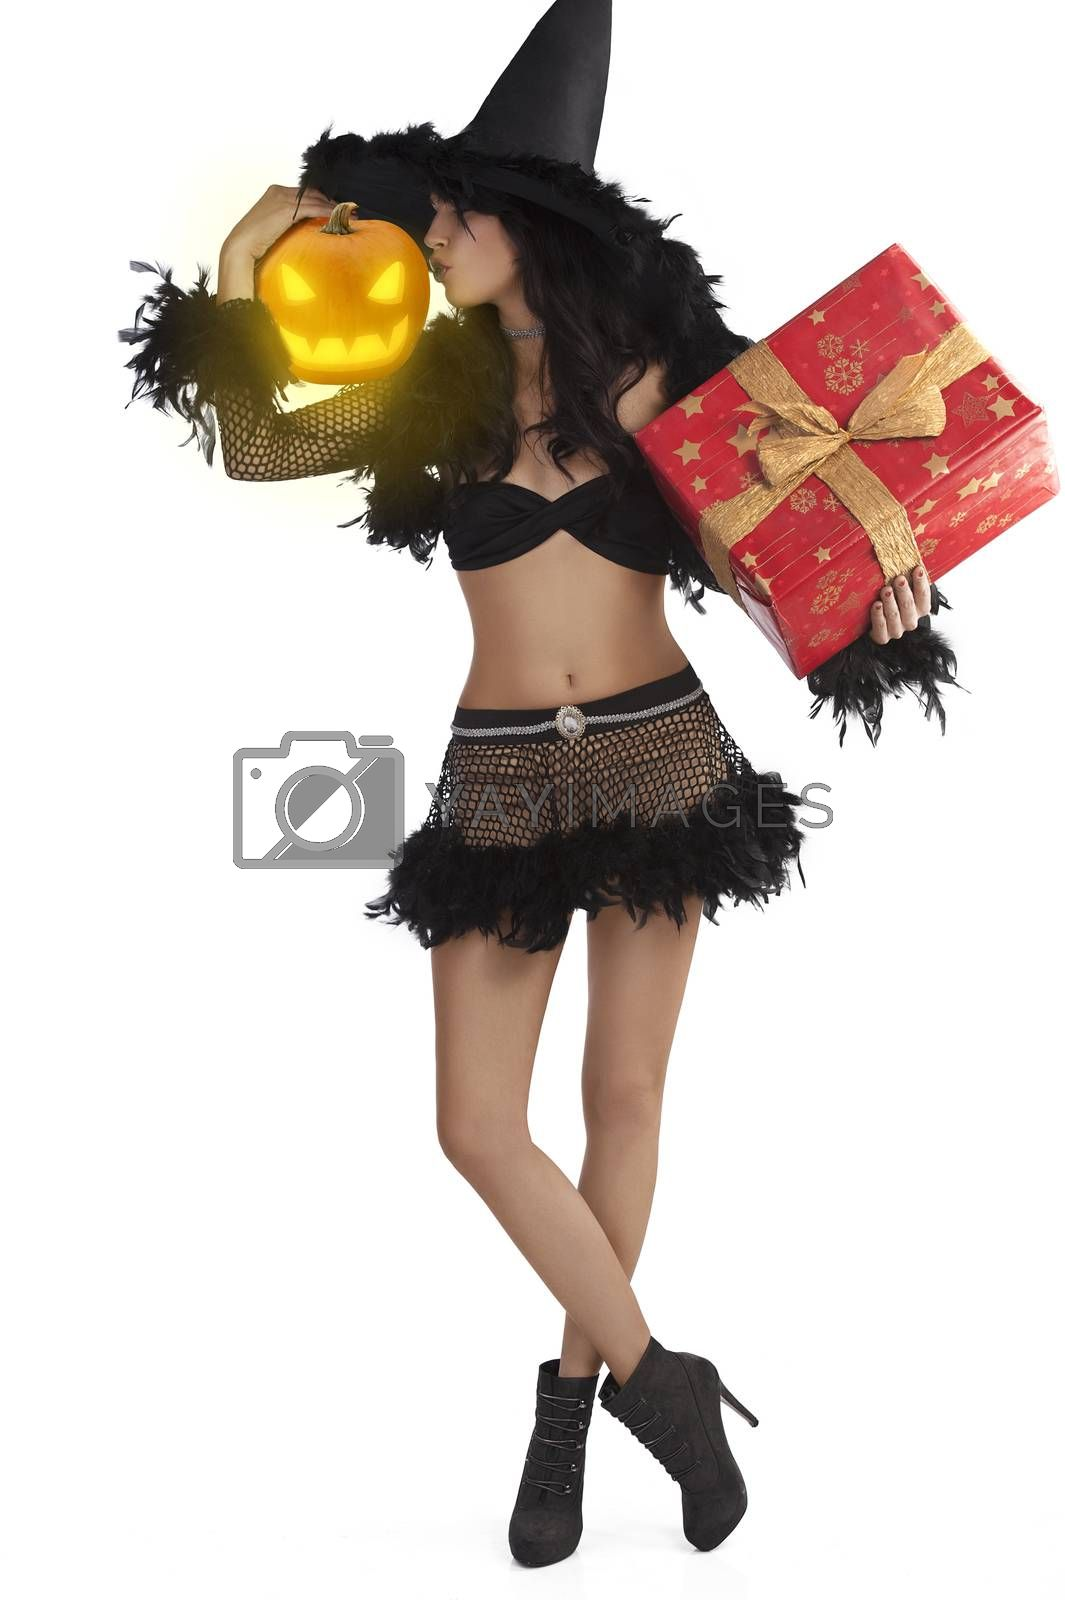 Royalty free image of girl in halloween dress standing with gift box jack-o'-lantern by fotoCD